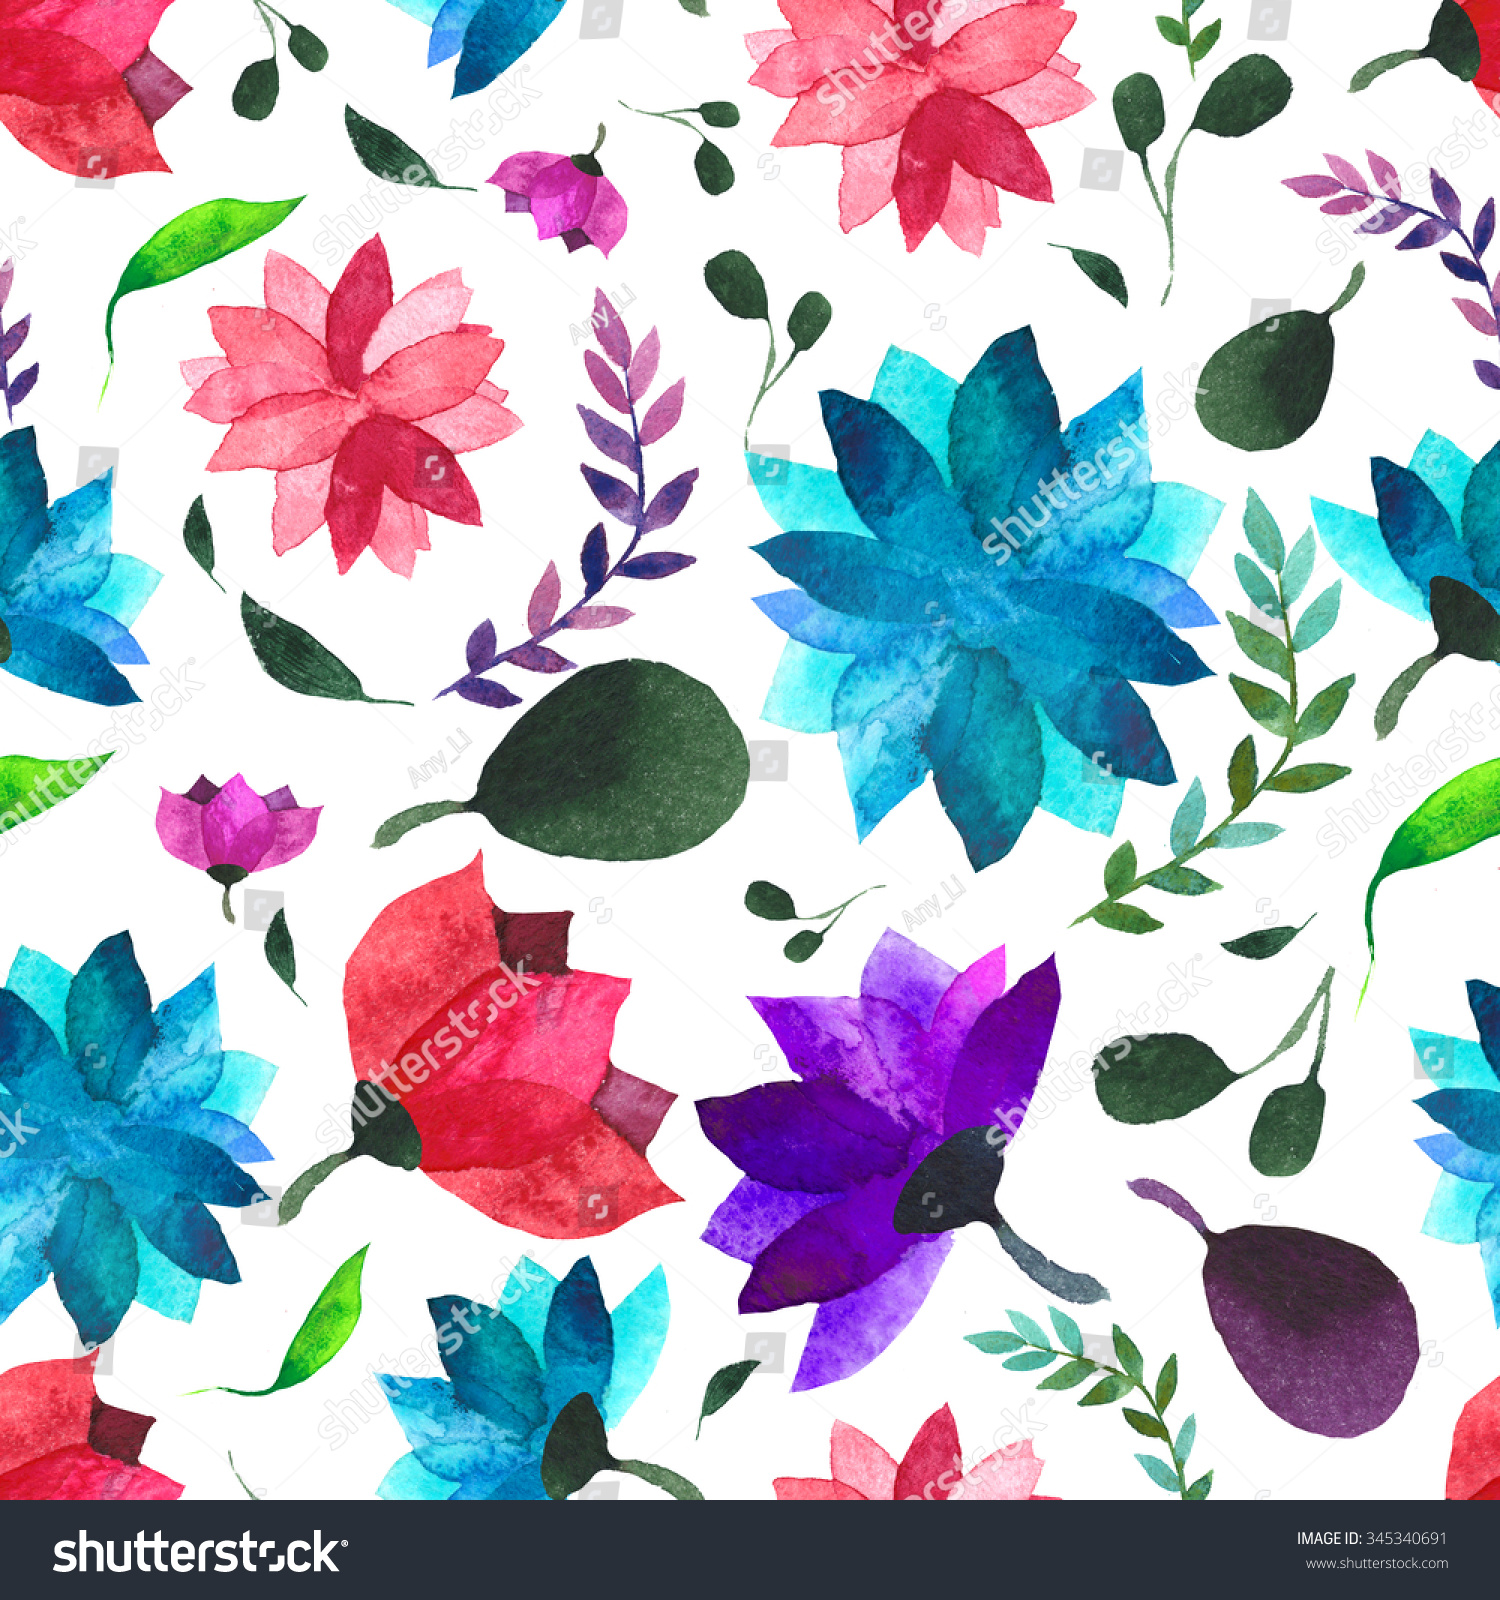 Watercolor Floral Wallpaper Seamless Pattern Background Stock